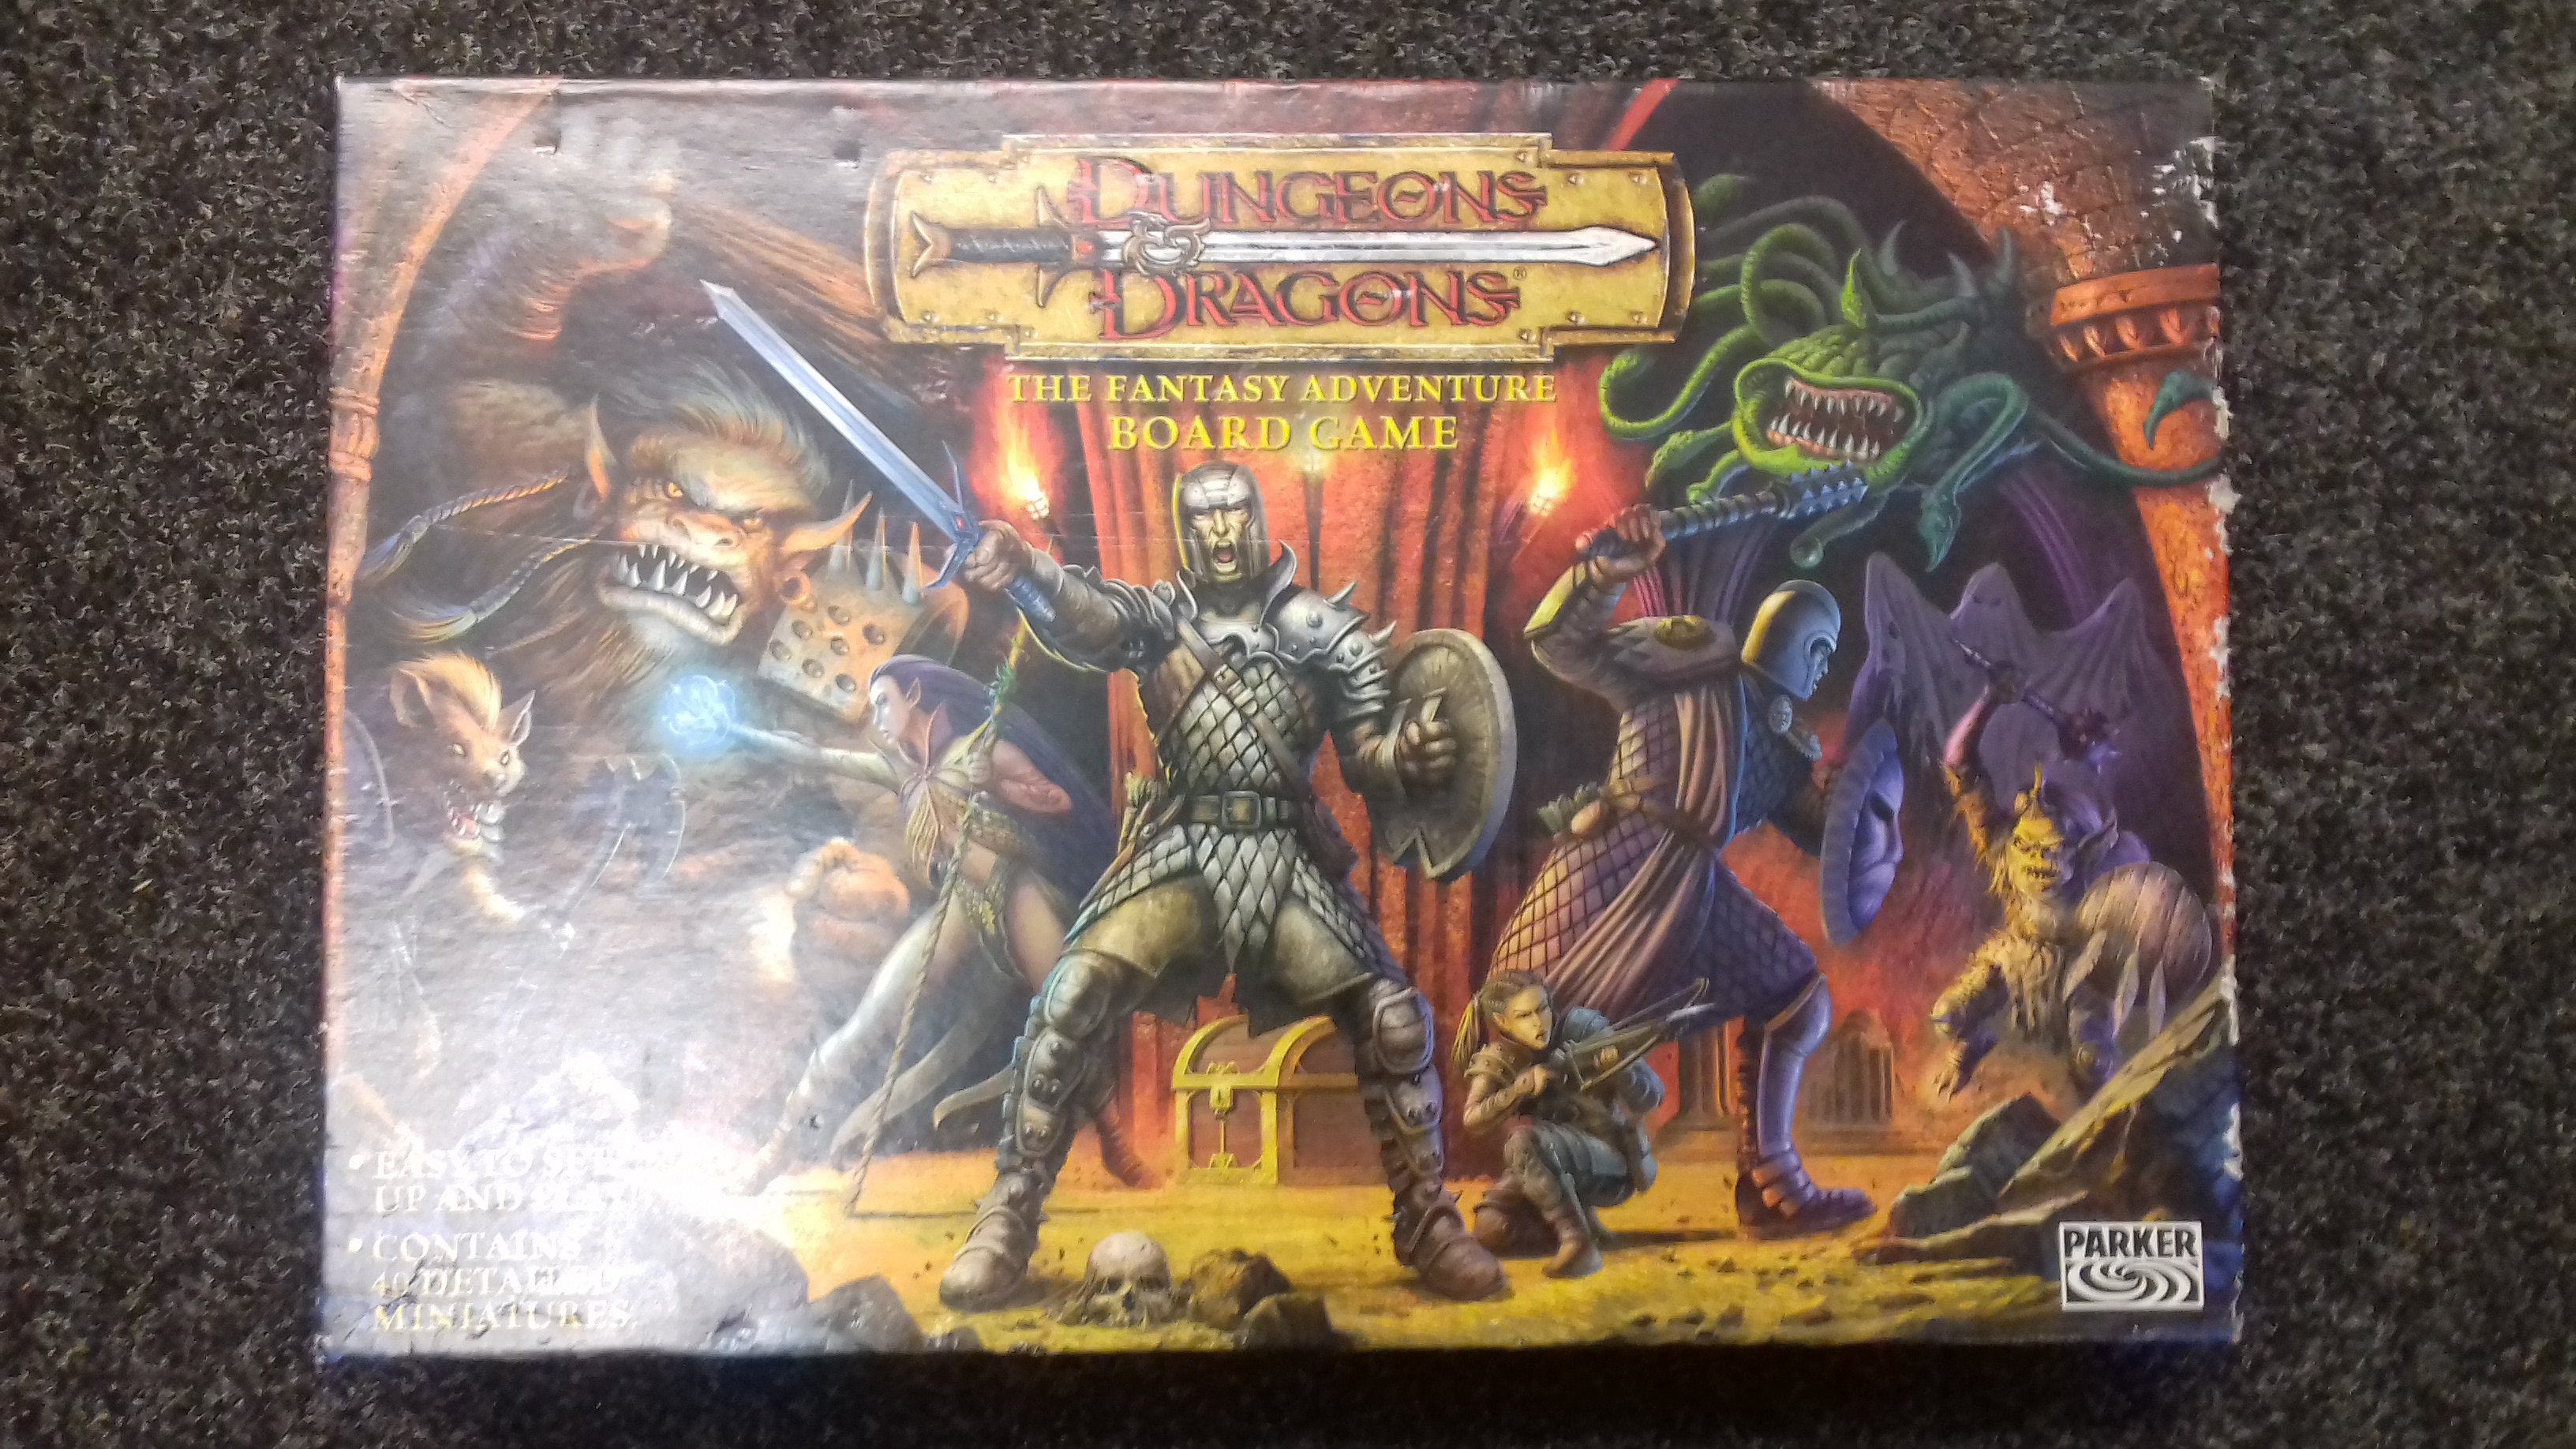 Dungeons & Dragons Fantasy Board Game